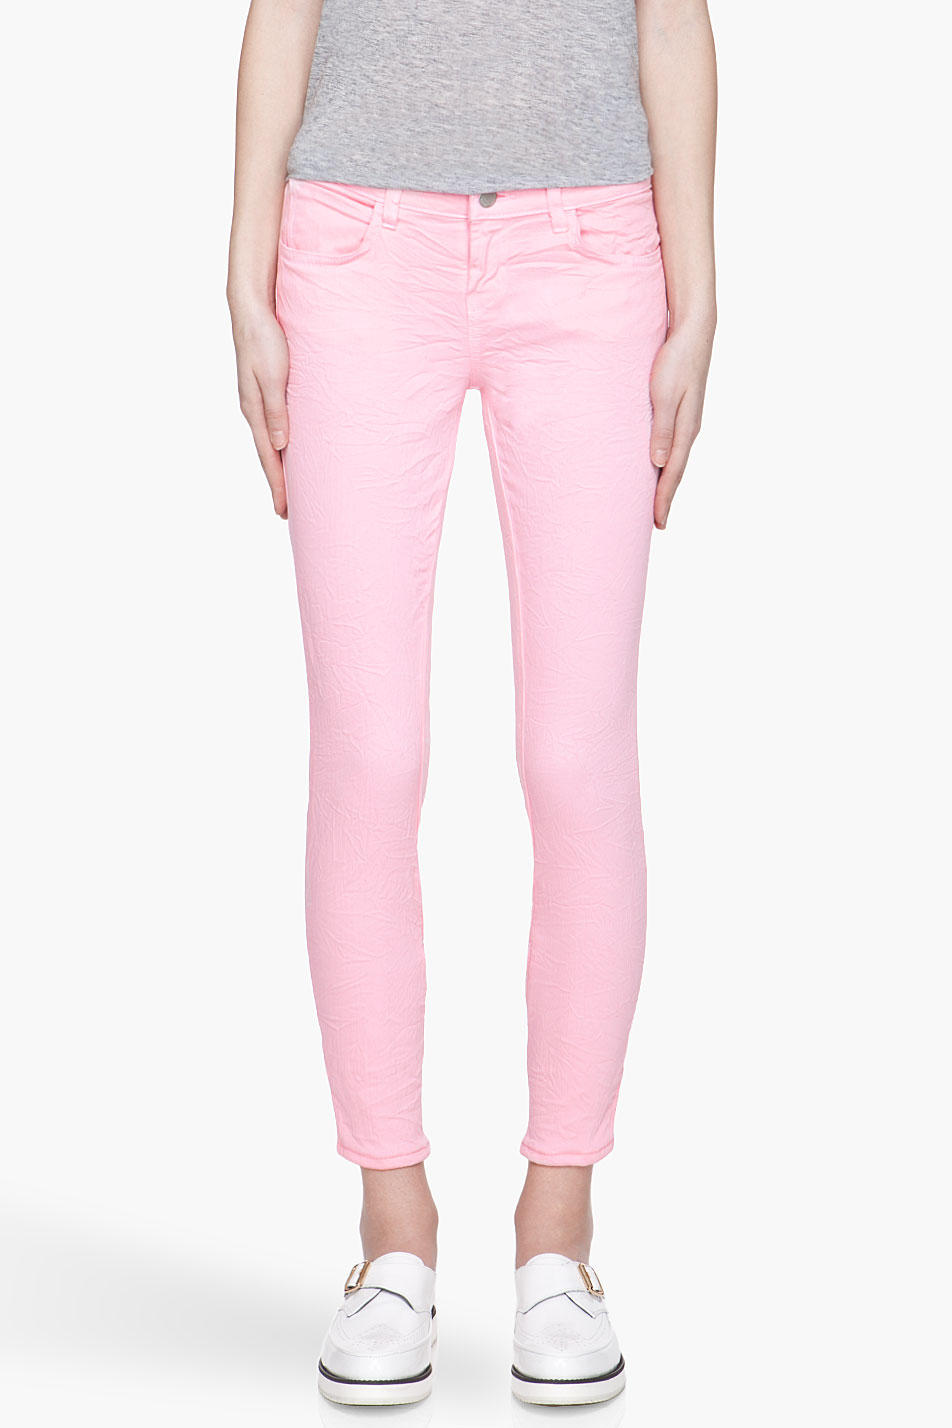 Model Moto Neon Pink 78ths Jeans  8 New Season Neon Jeans  Rad Or